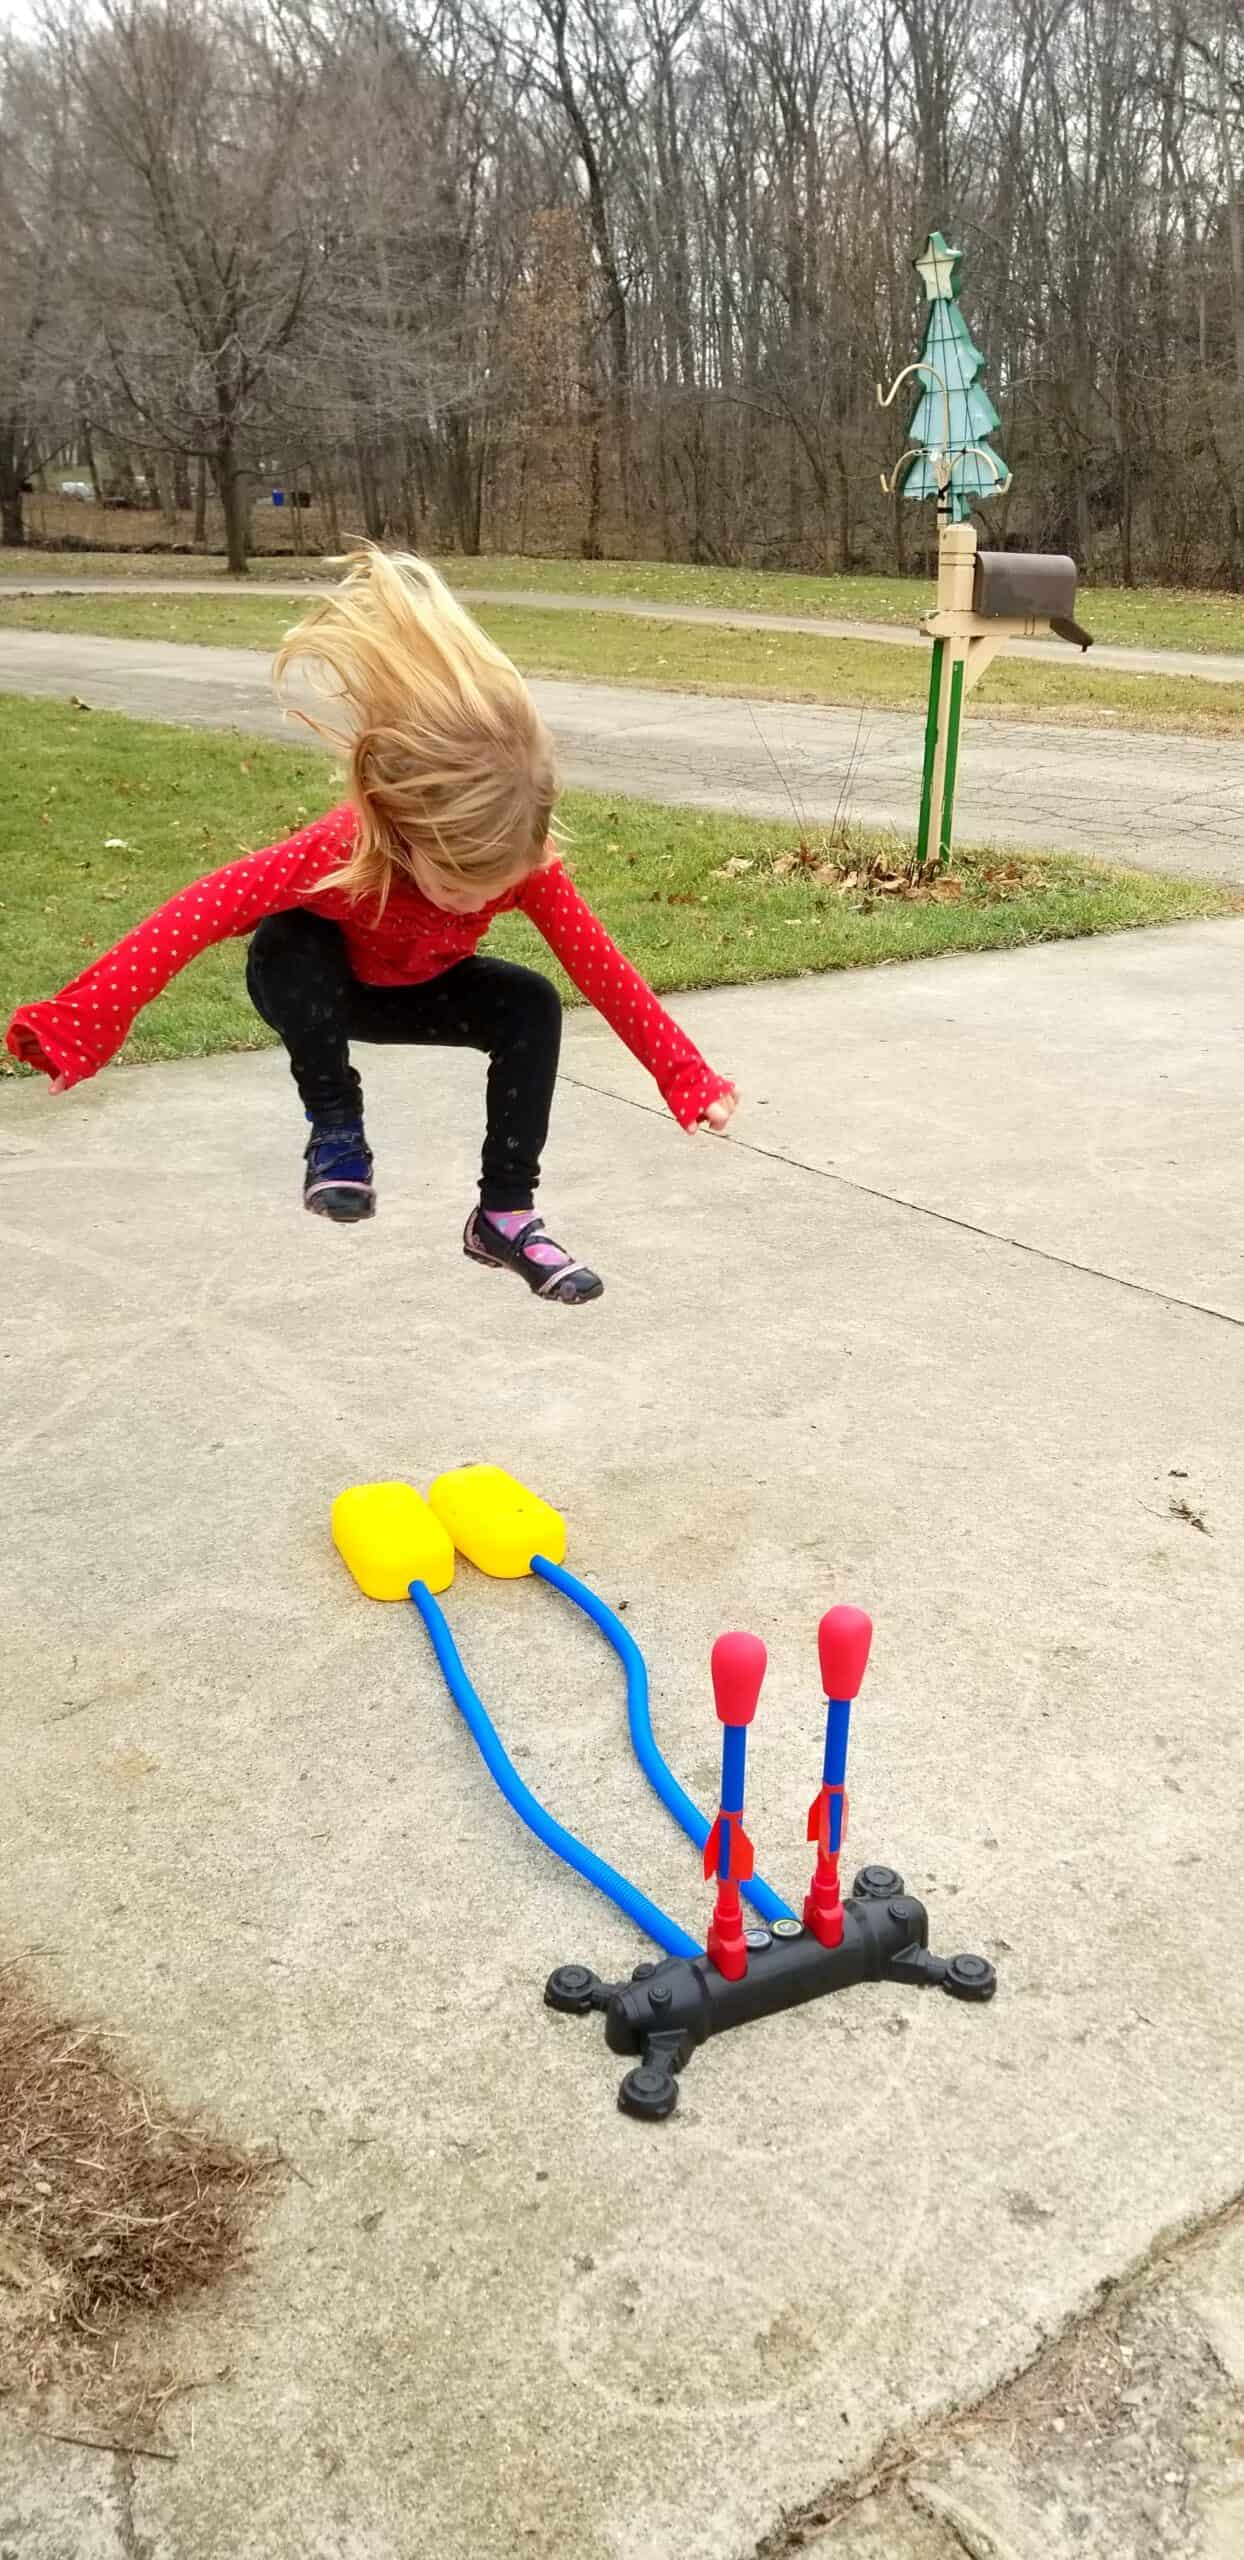 girl jumping on stomp rockets toy